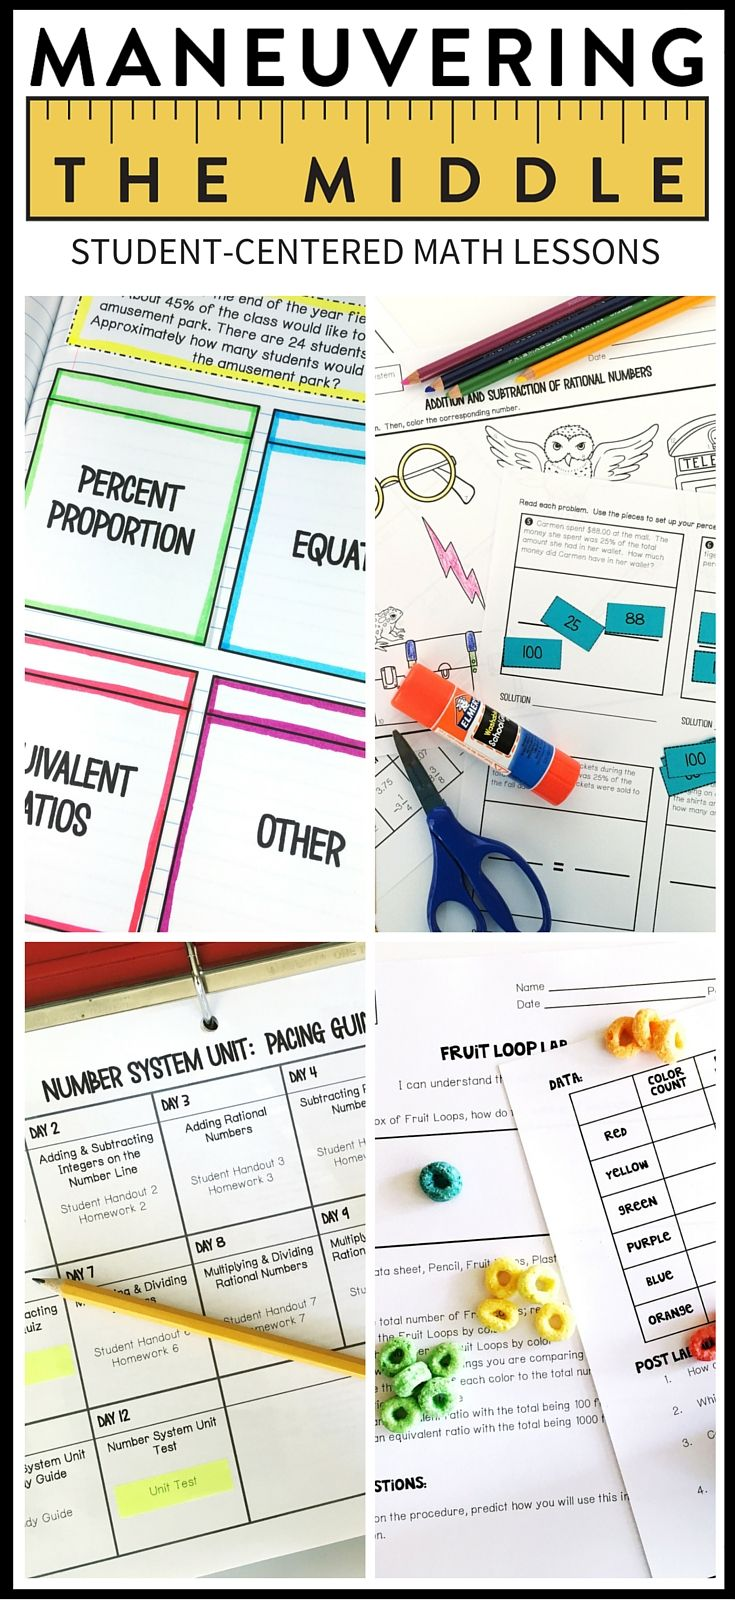 4416 best tutoring math images on pinterest school math curriculum fandeluxe Image collections